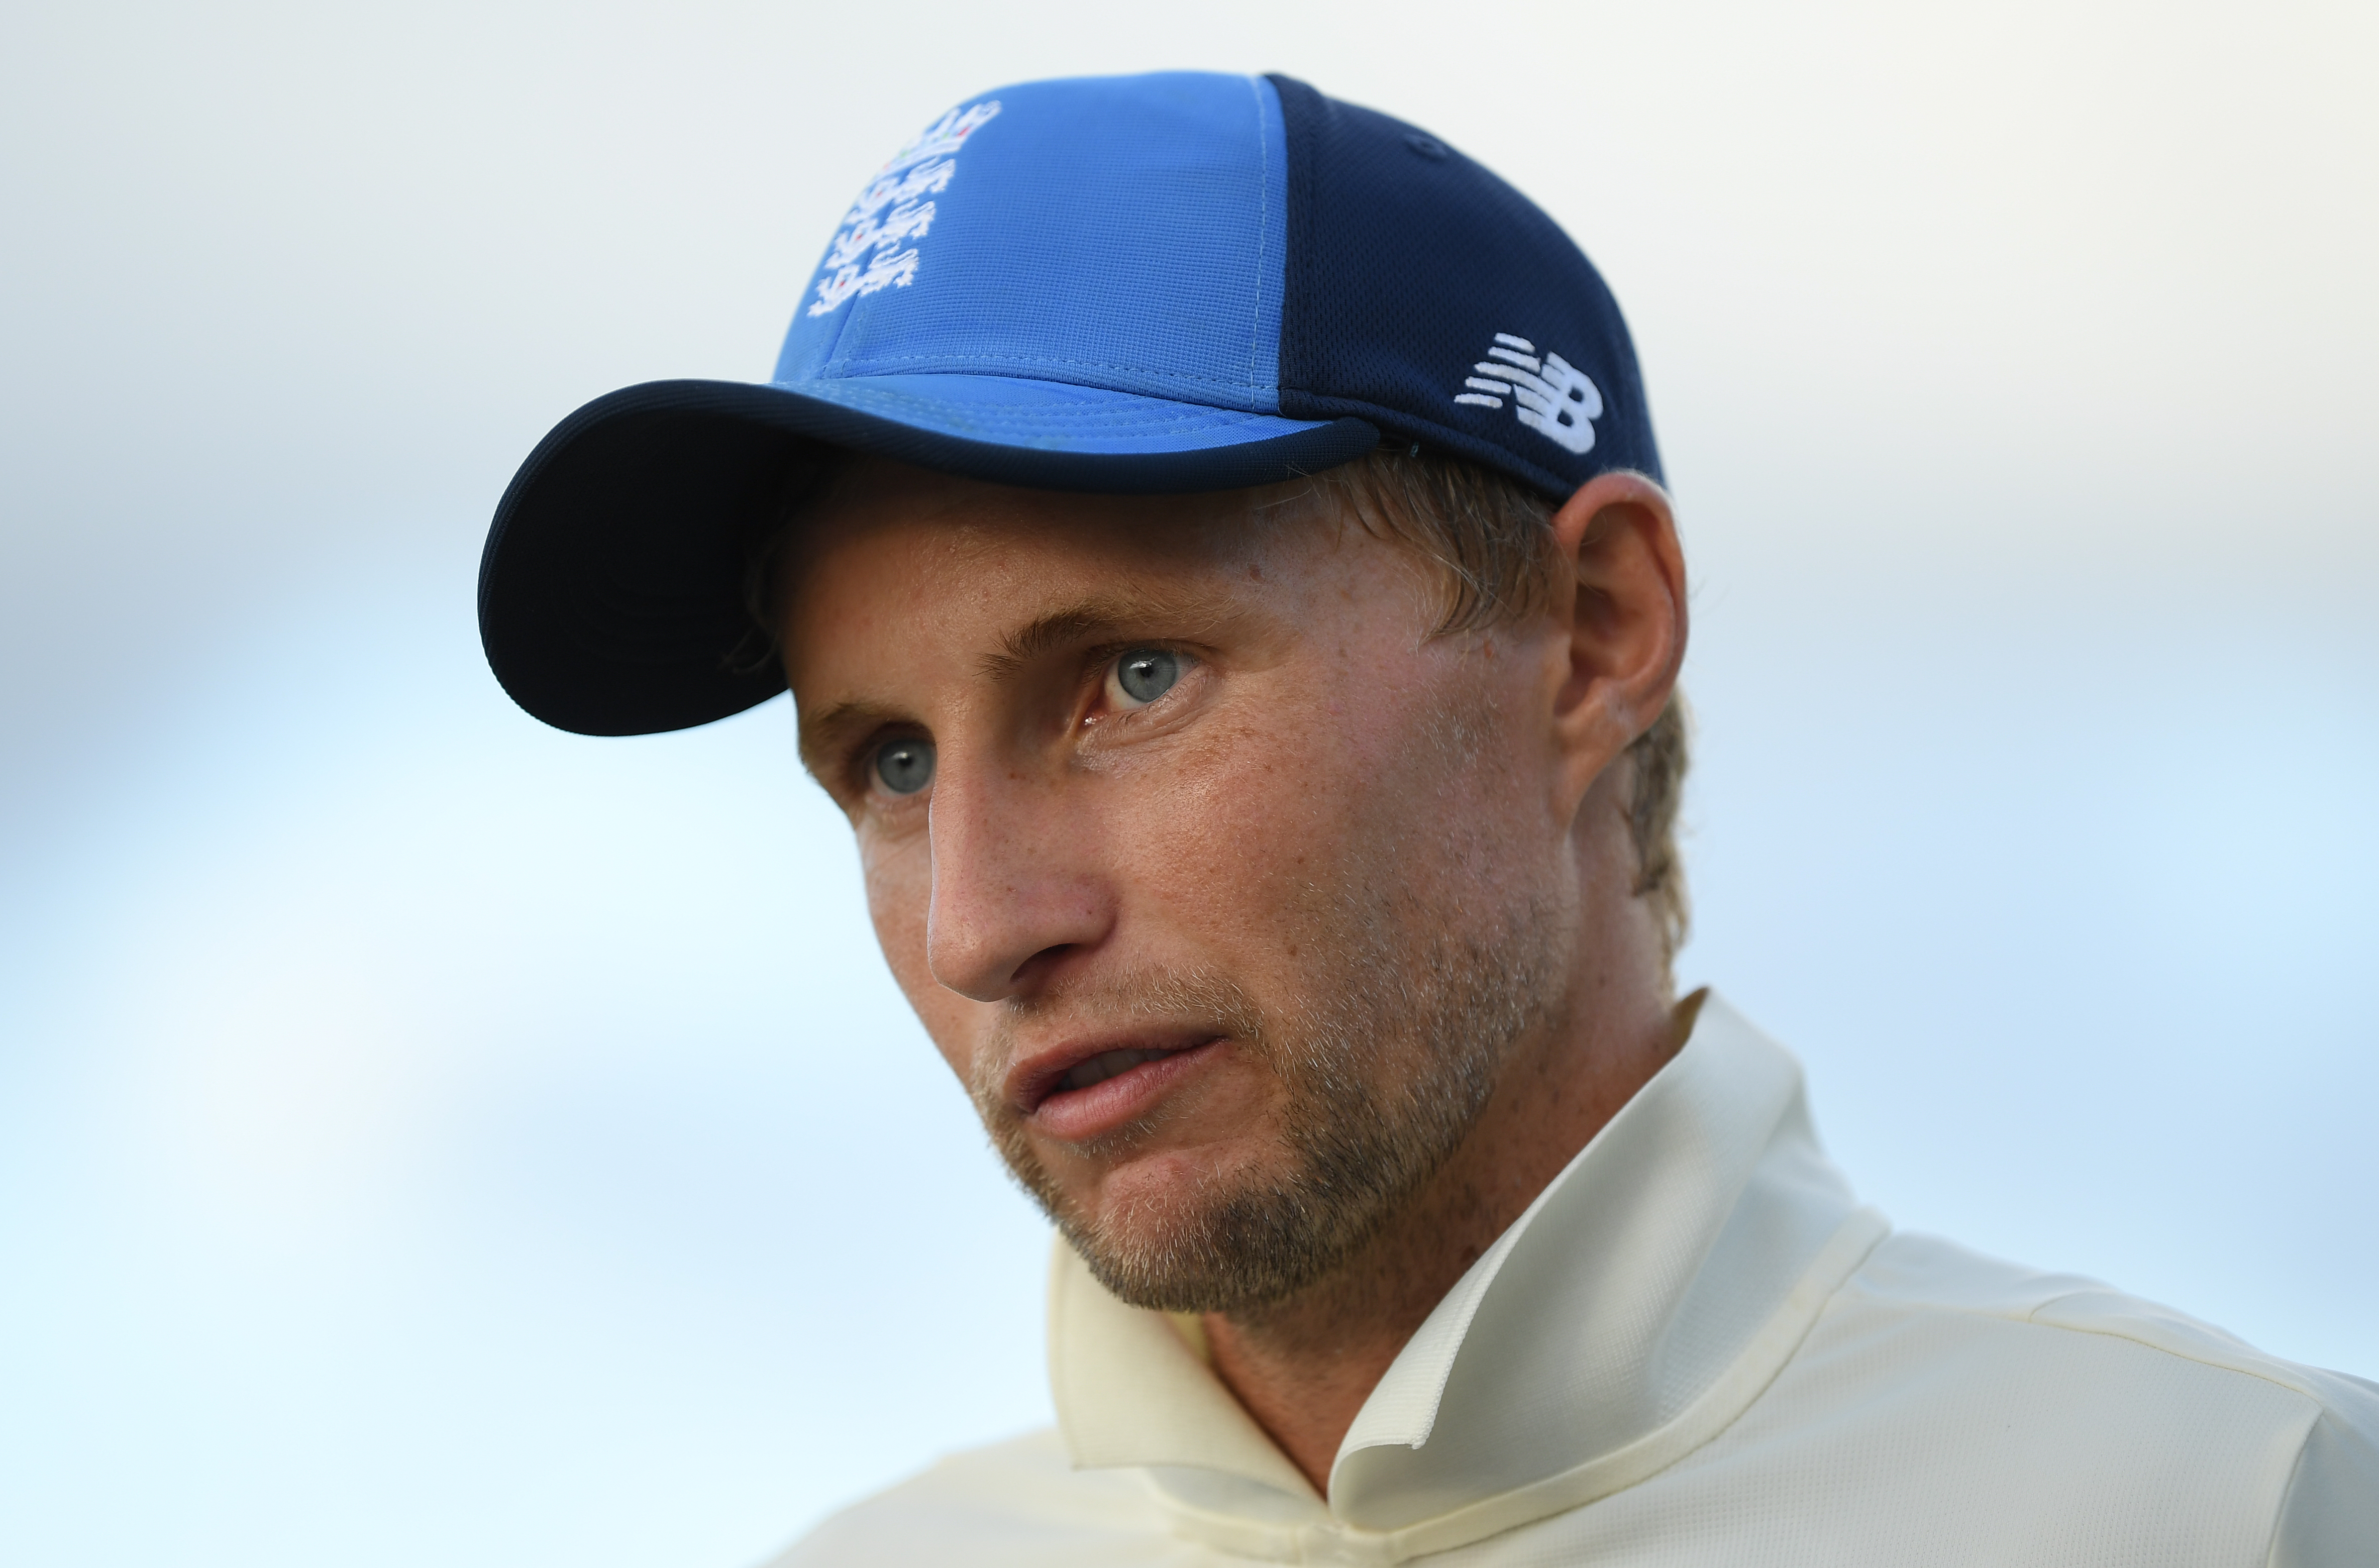 England captain Joe Root talks to the media after Day Three of the Third Test match between the West Indies and England at Darren Sammy Cricket Ground on February 11, 2019 in Gros Islet, Saint Lucia